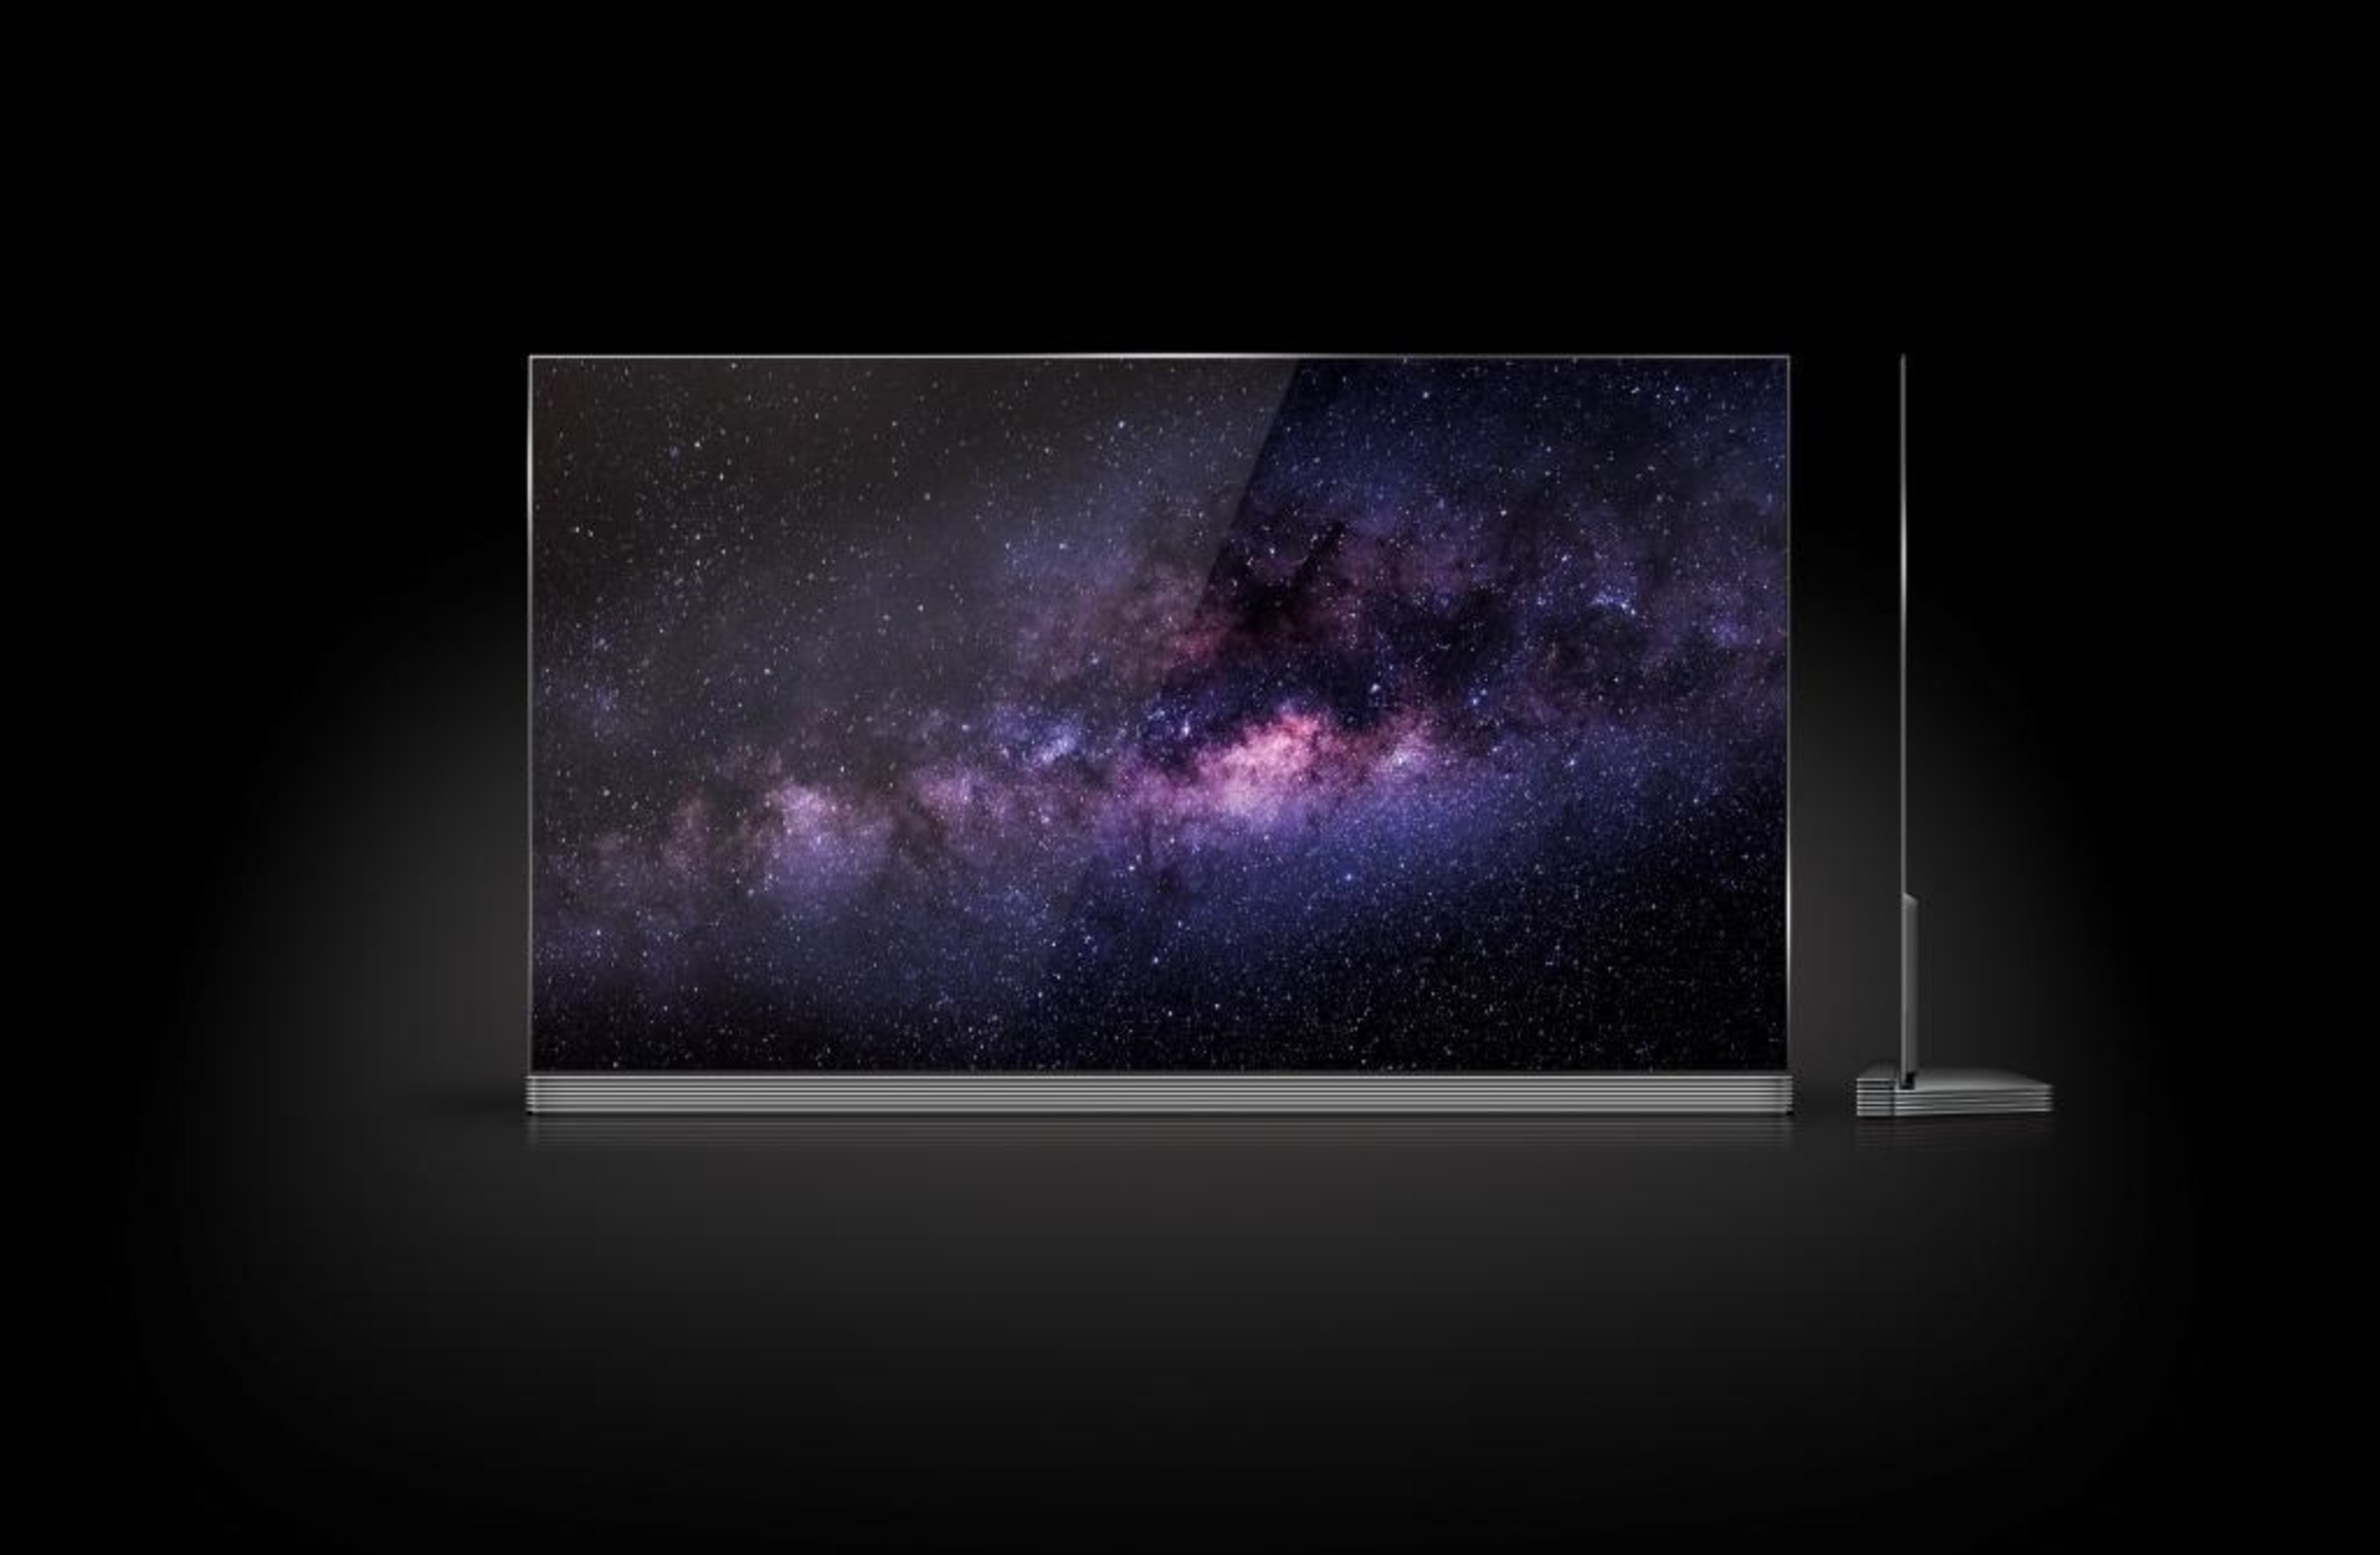 LG'S 2016 Flagship OLED TV Now Available For Presale At